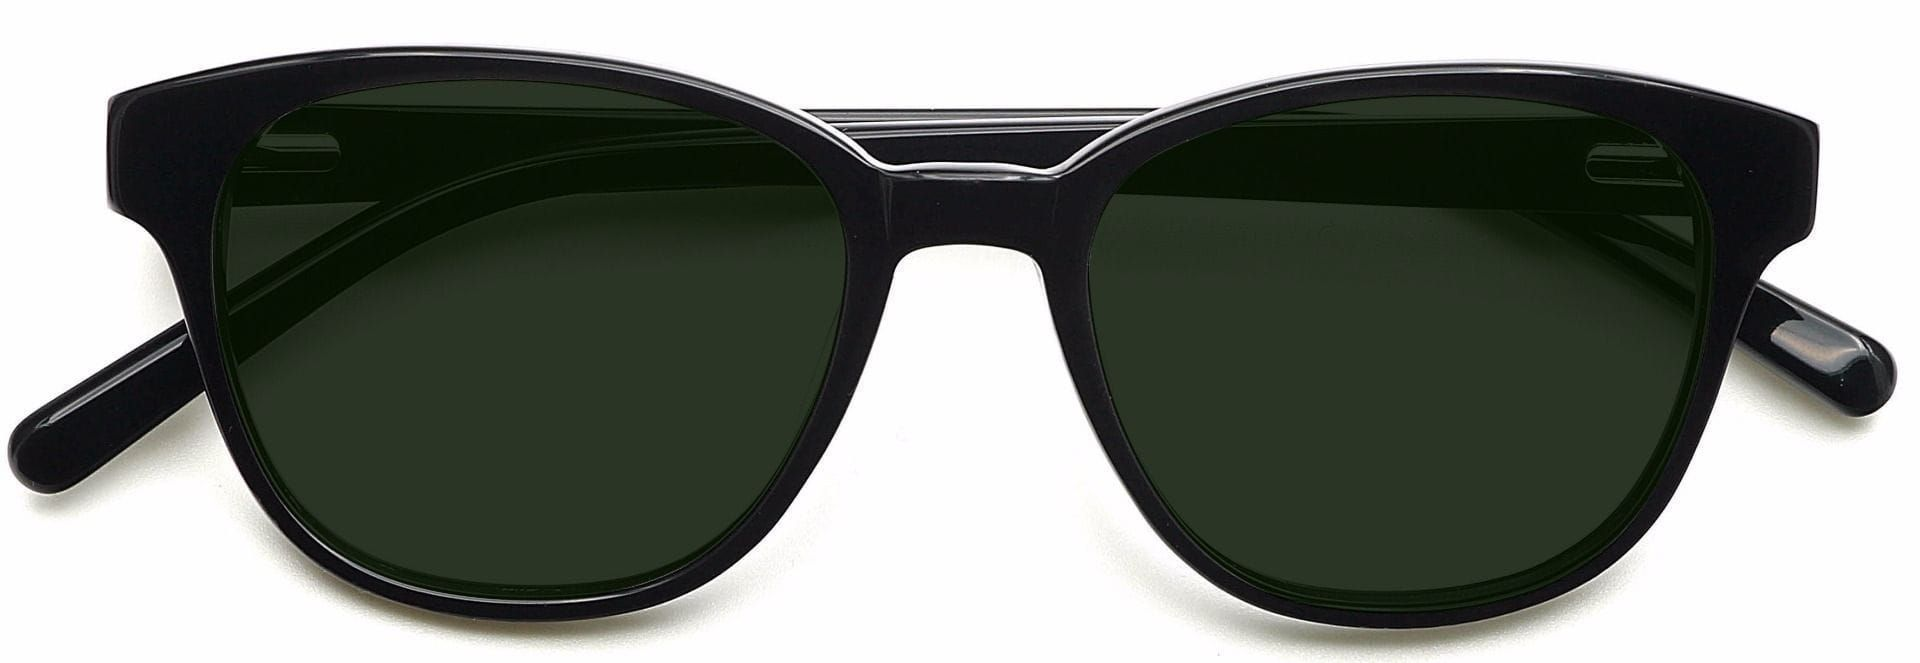 Elan Classic Square Lined Bifocal Sunglasses - Black Frame With Green Lenses